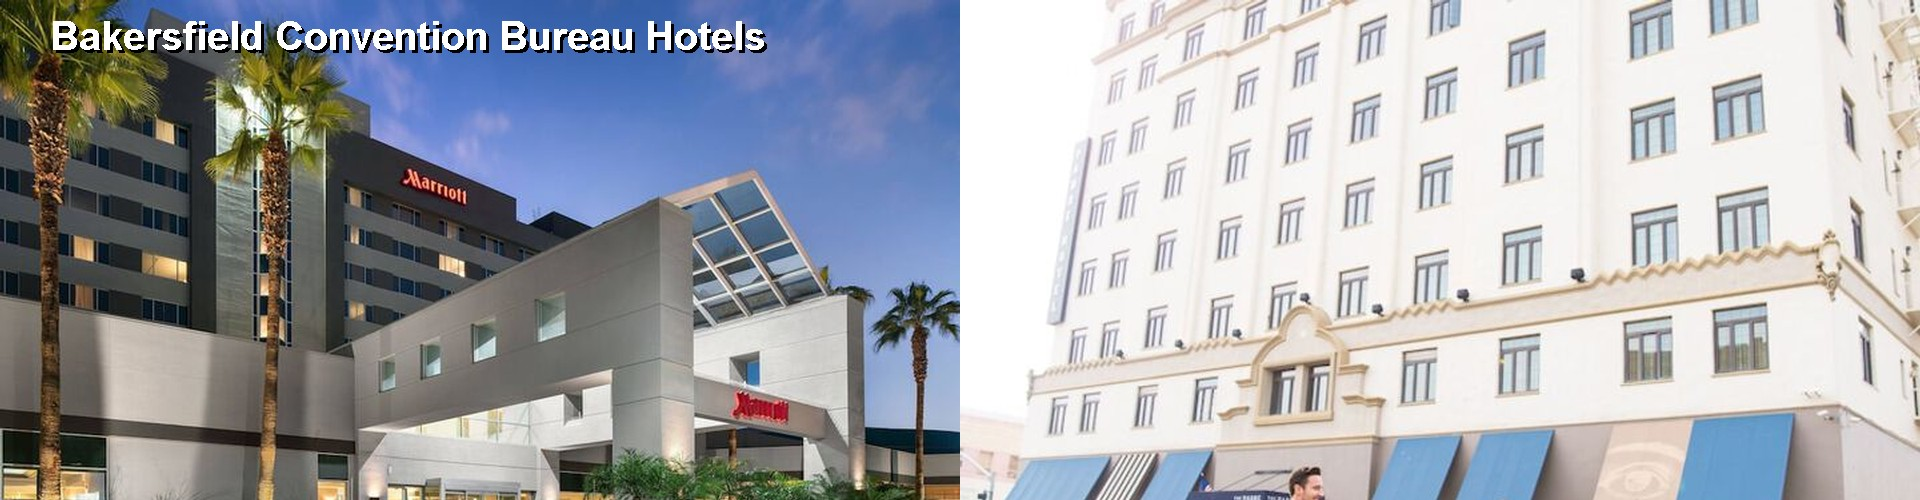 5 Best Hotels near Bakersfield Convention Bureau